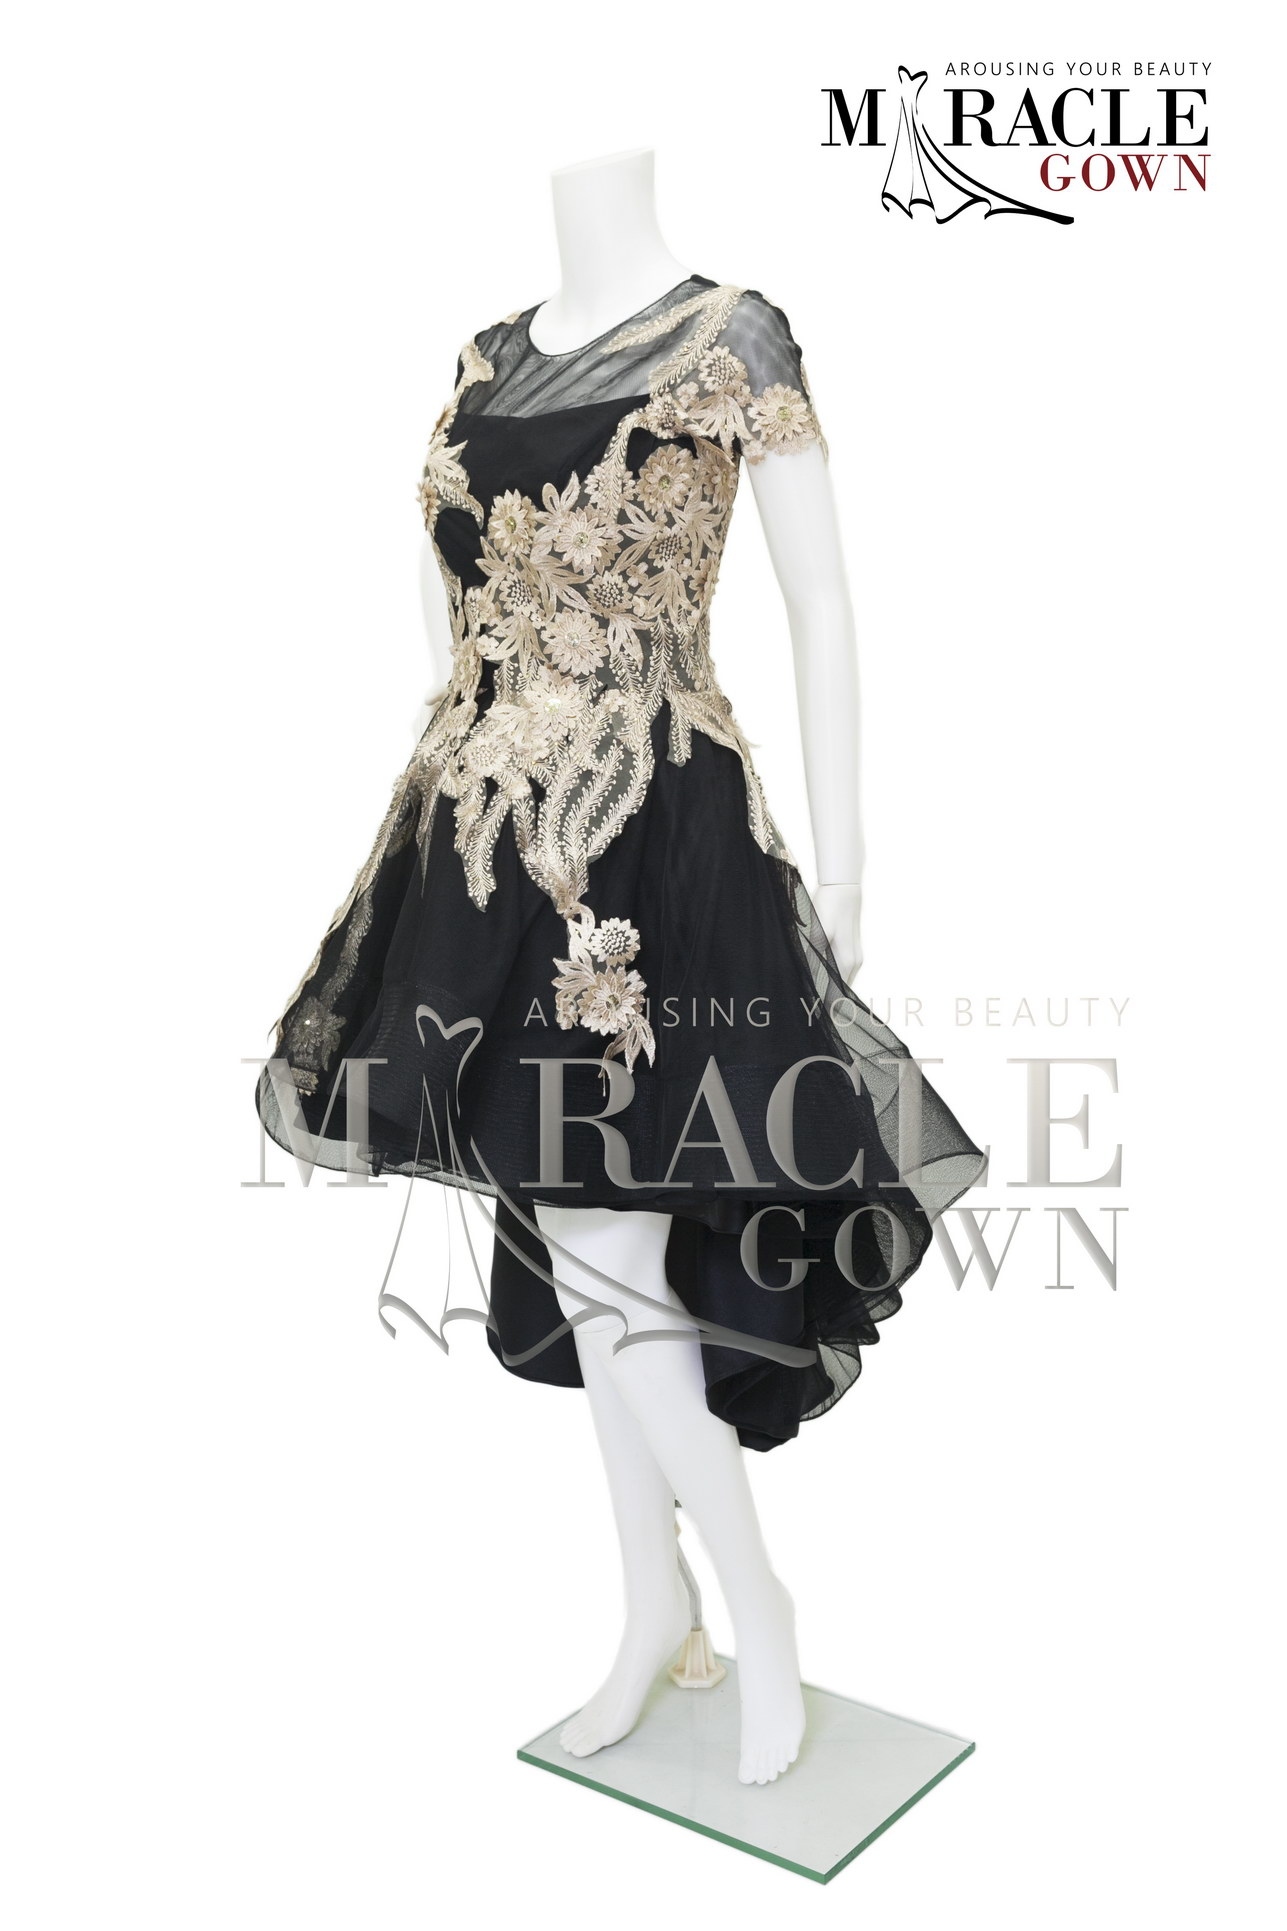 Sewa Gaun Surabaya - Miracle Gown - The black and gold assembly